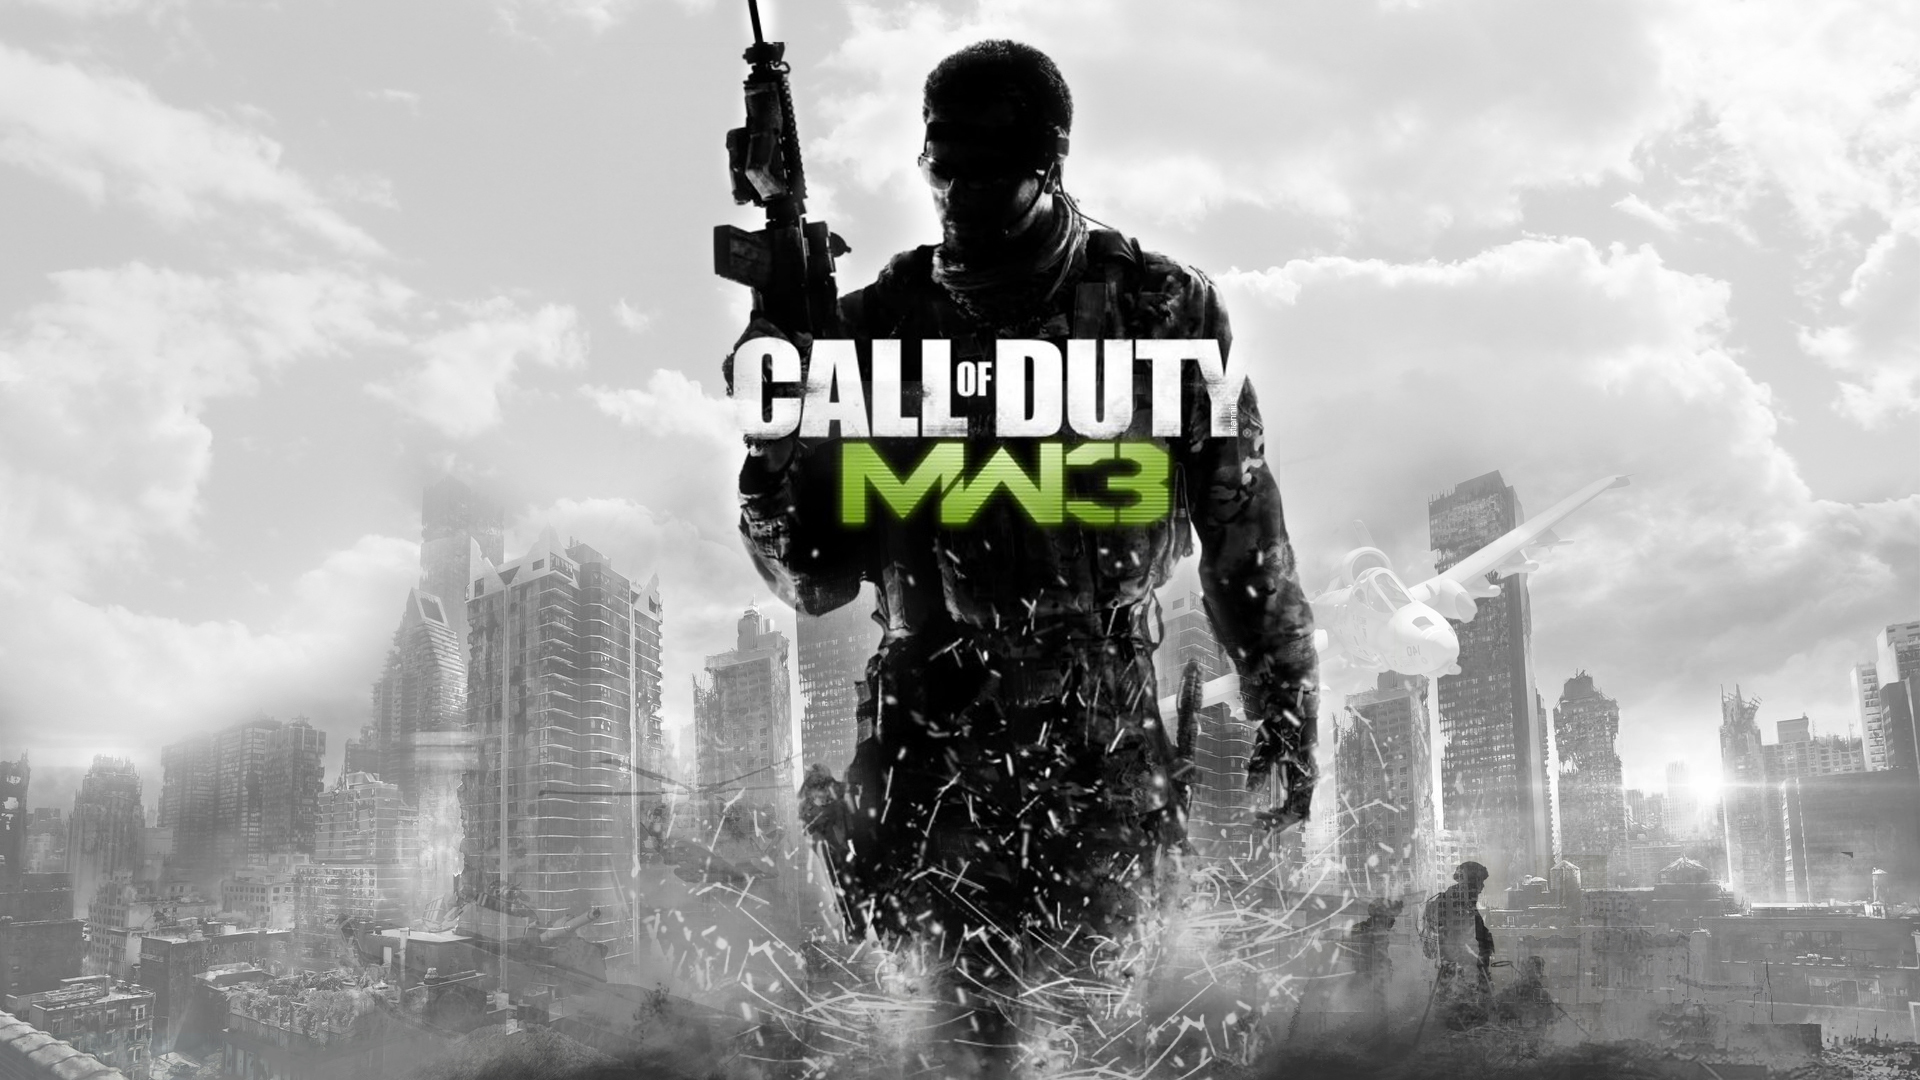 High Definition Wallpapers HD 19201080 COD MW3 Solider HD 1920x1080